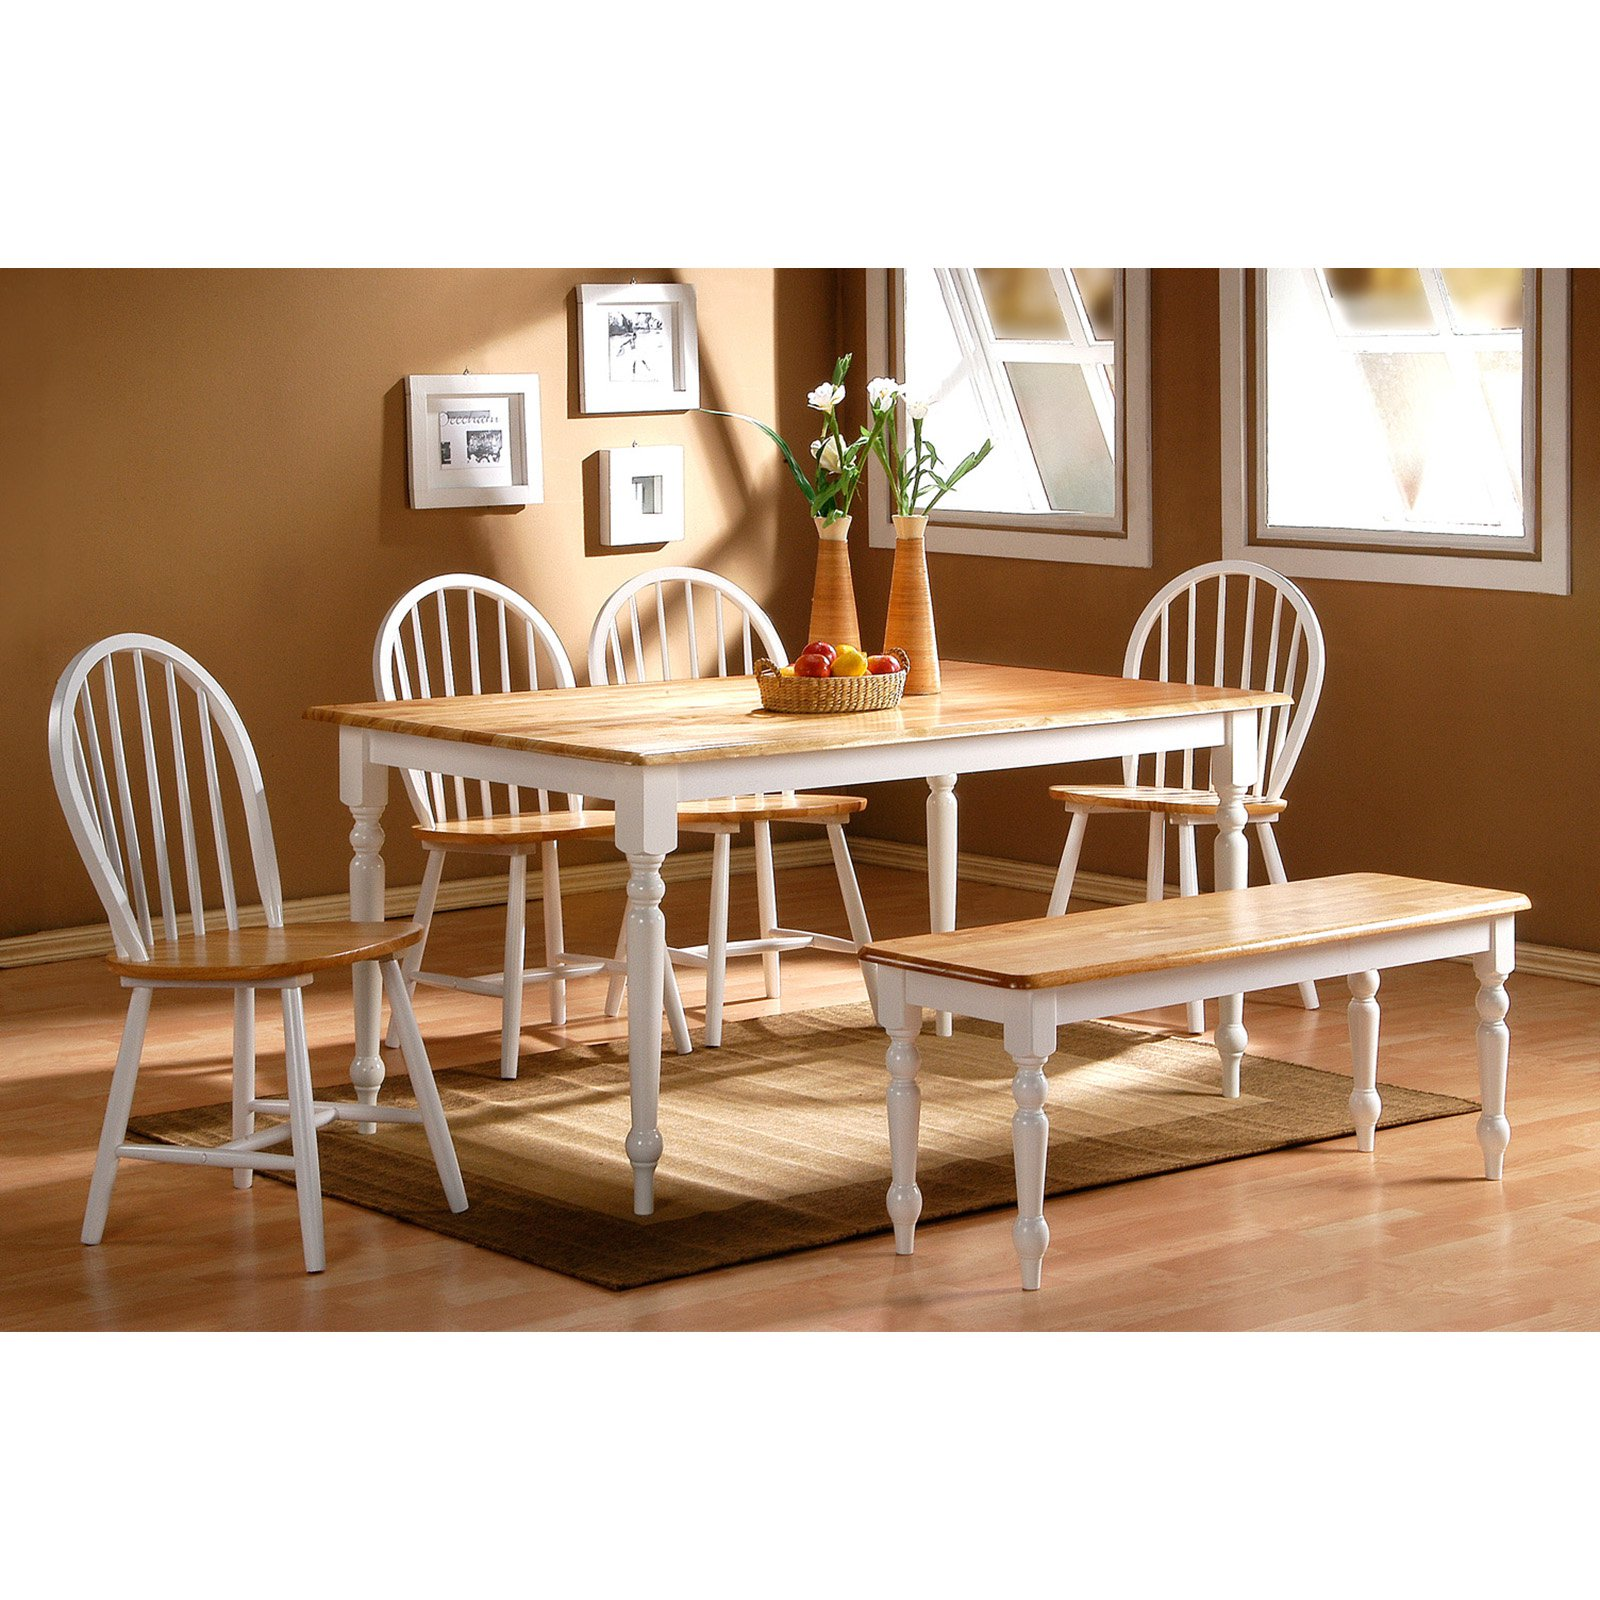 Boraam Farmhouse 6-Piece Dining Set, White/Natural